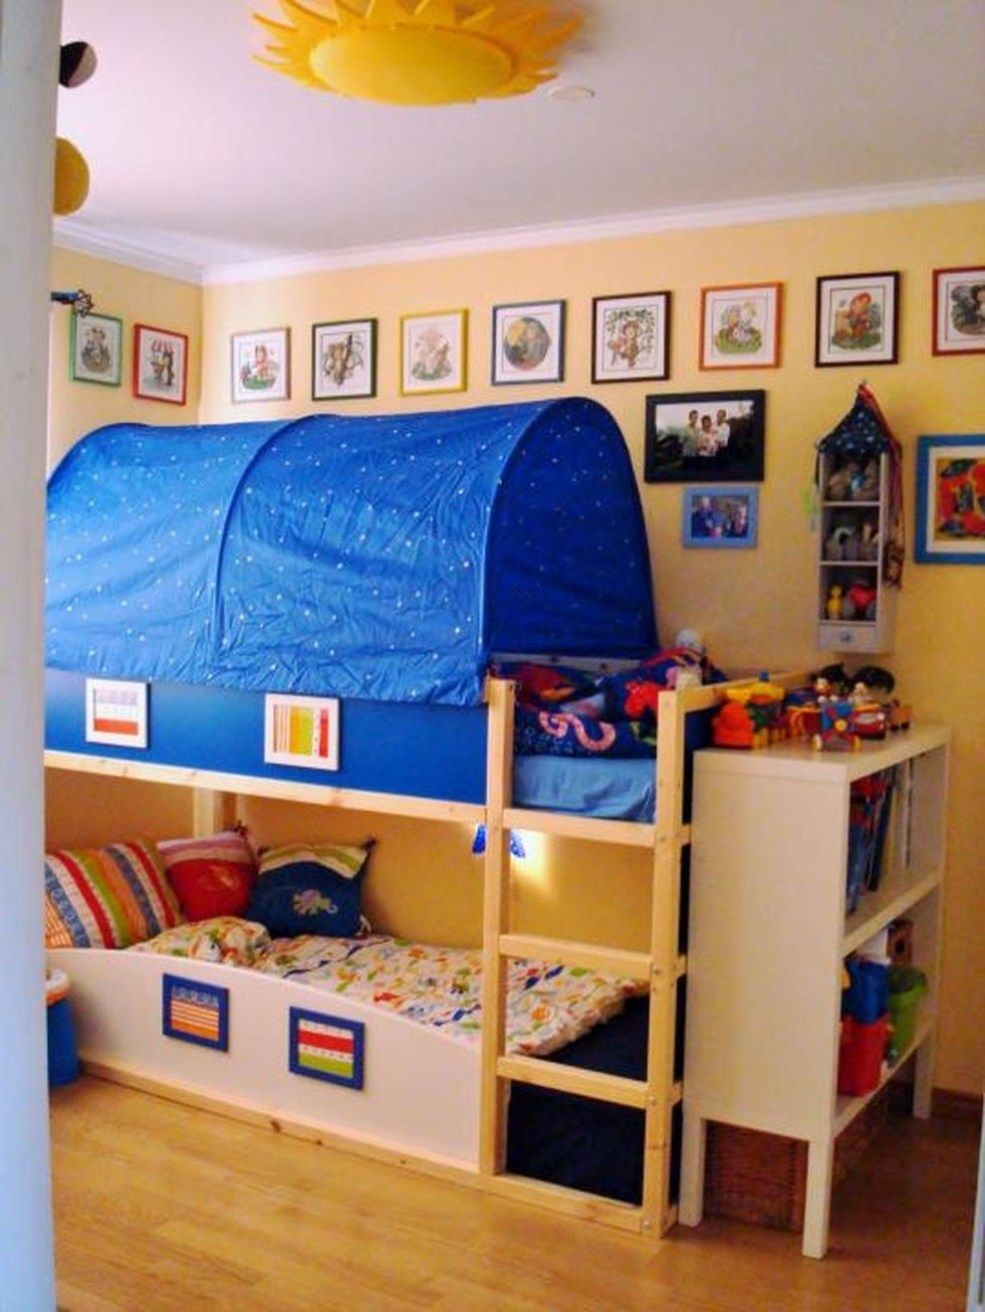 32 cool ikea kura beds ideas for your kids rooms toddler on wonderful ideas of bunk beds for your kids bedroom id=96751